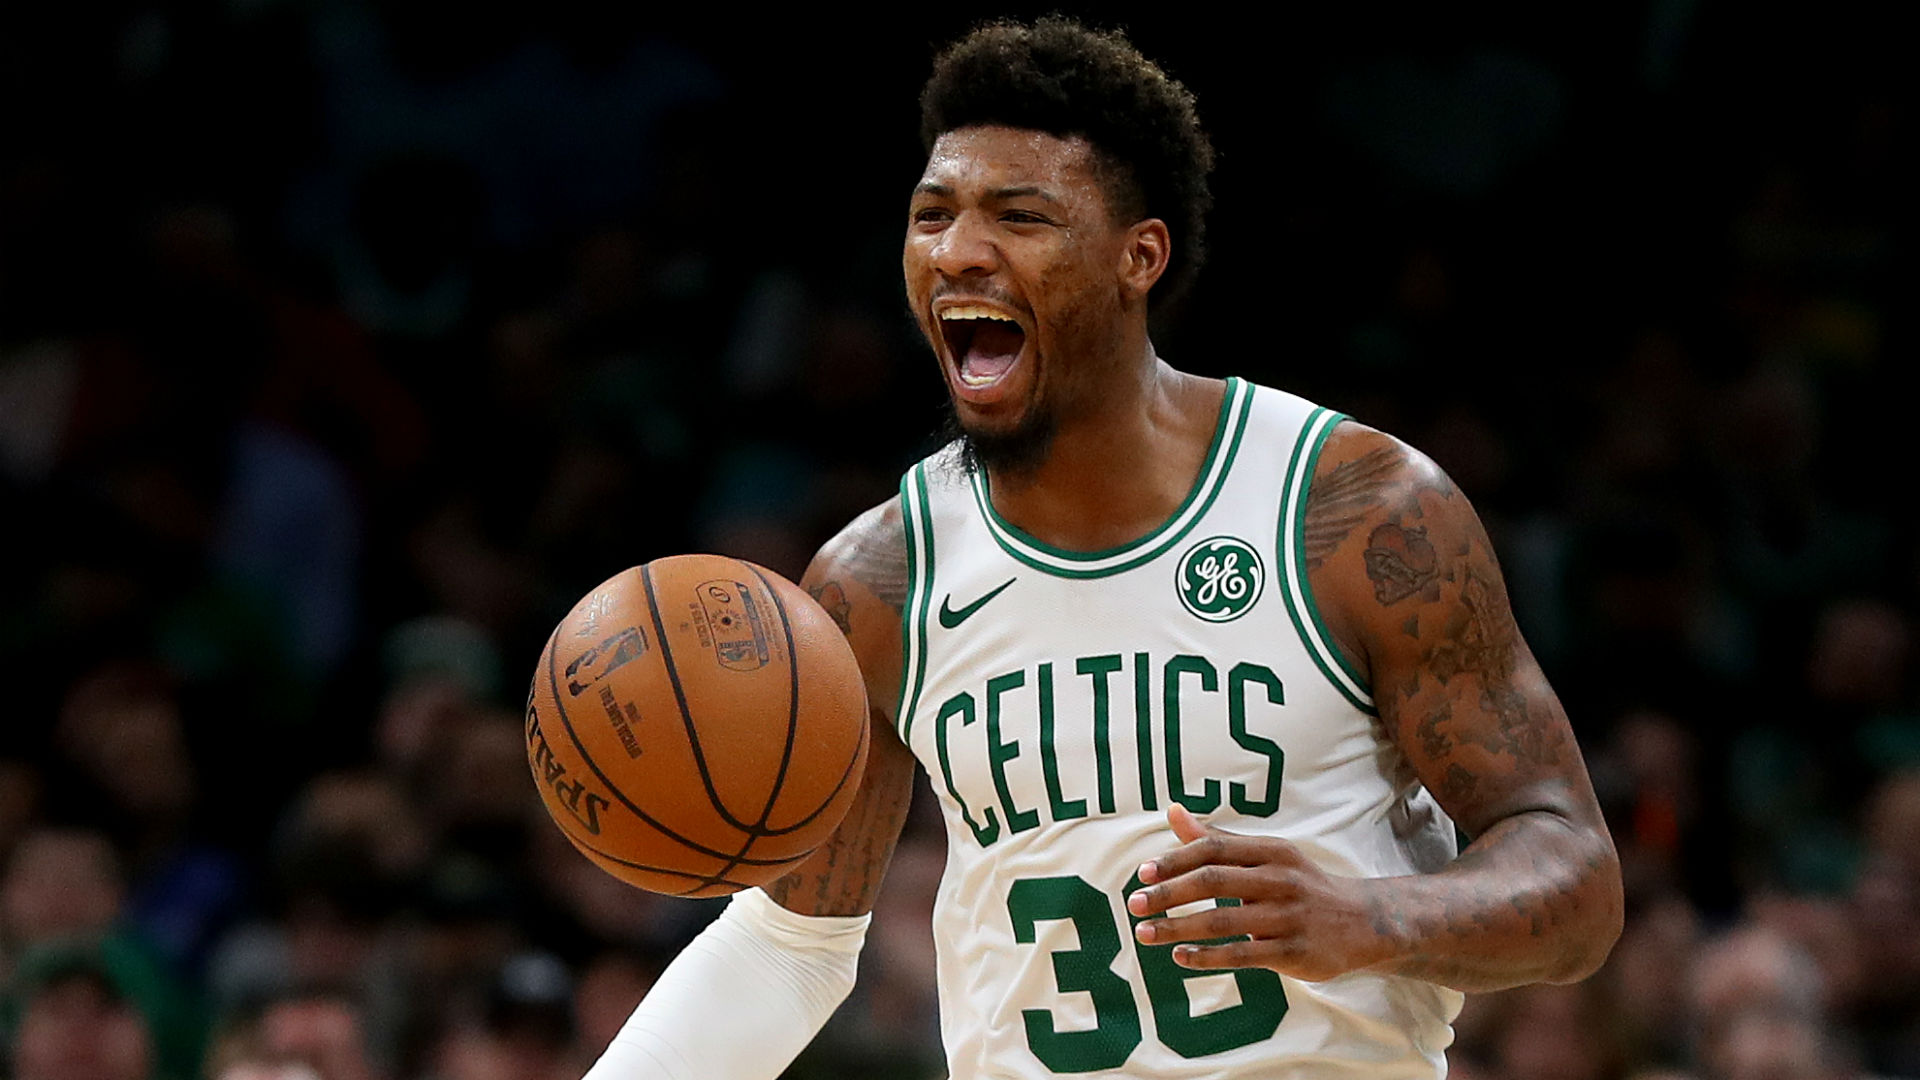 Celtics: Smart out 4-6 weeks partially torn oblique muscle